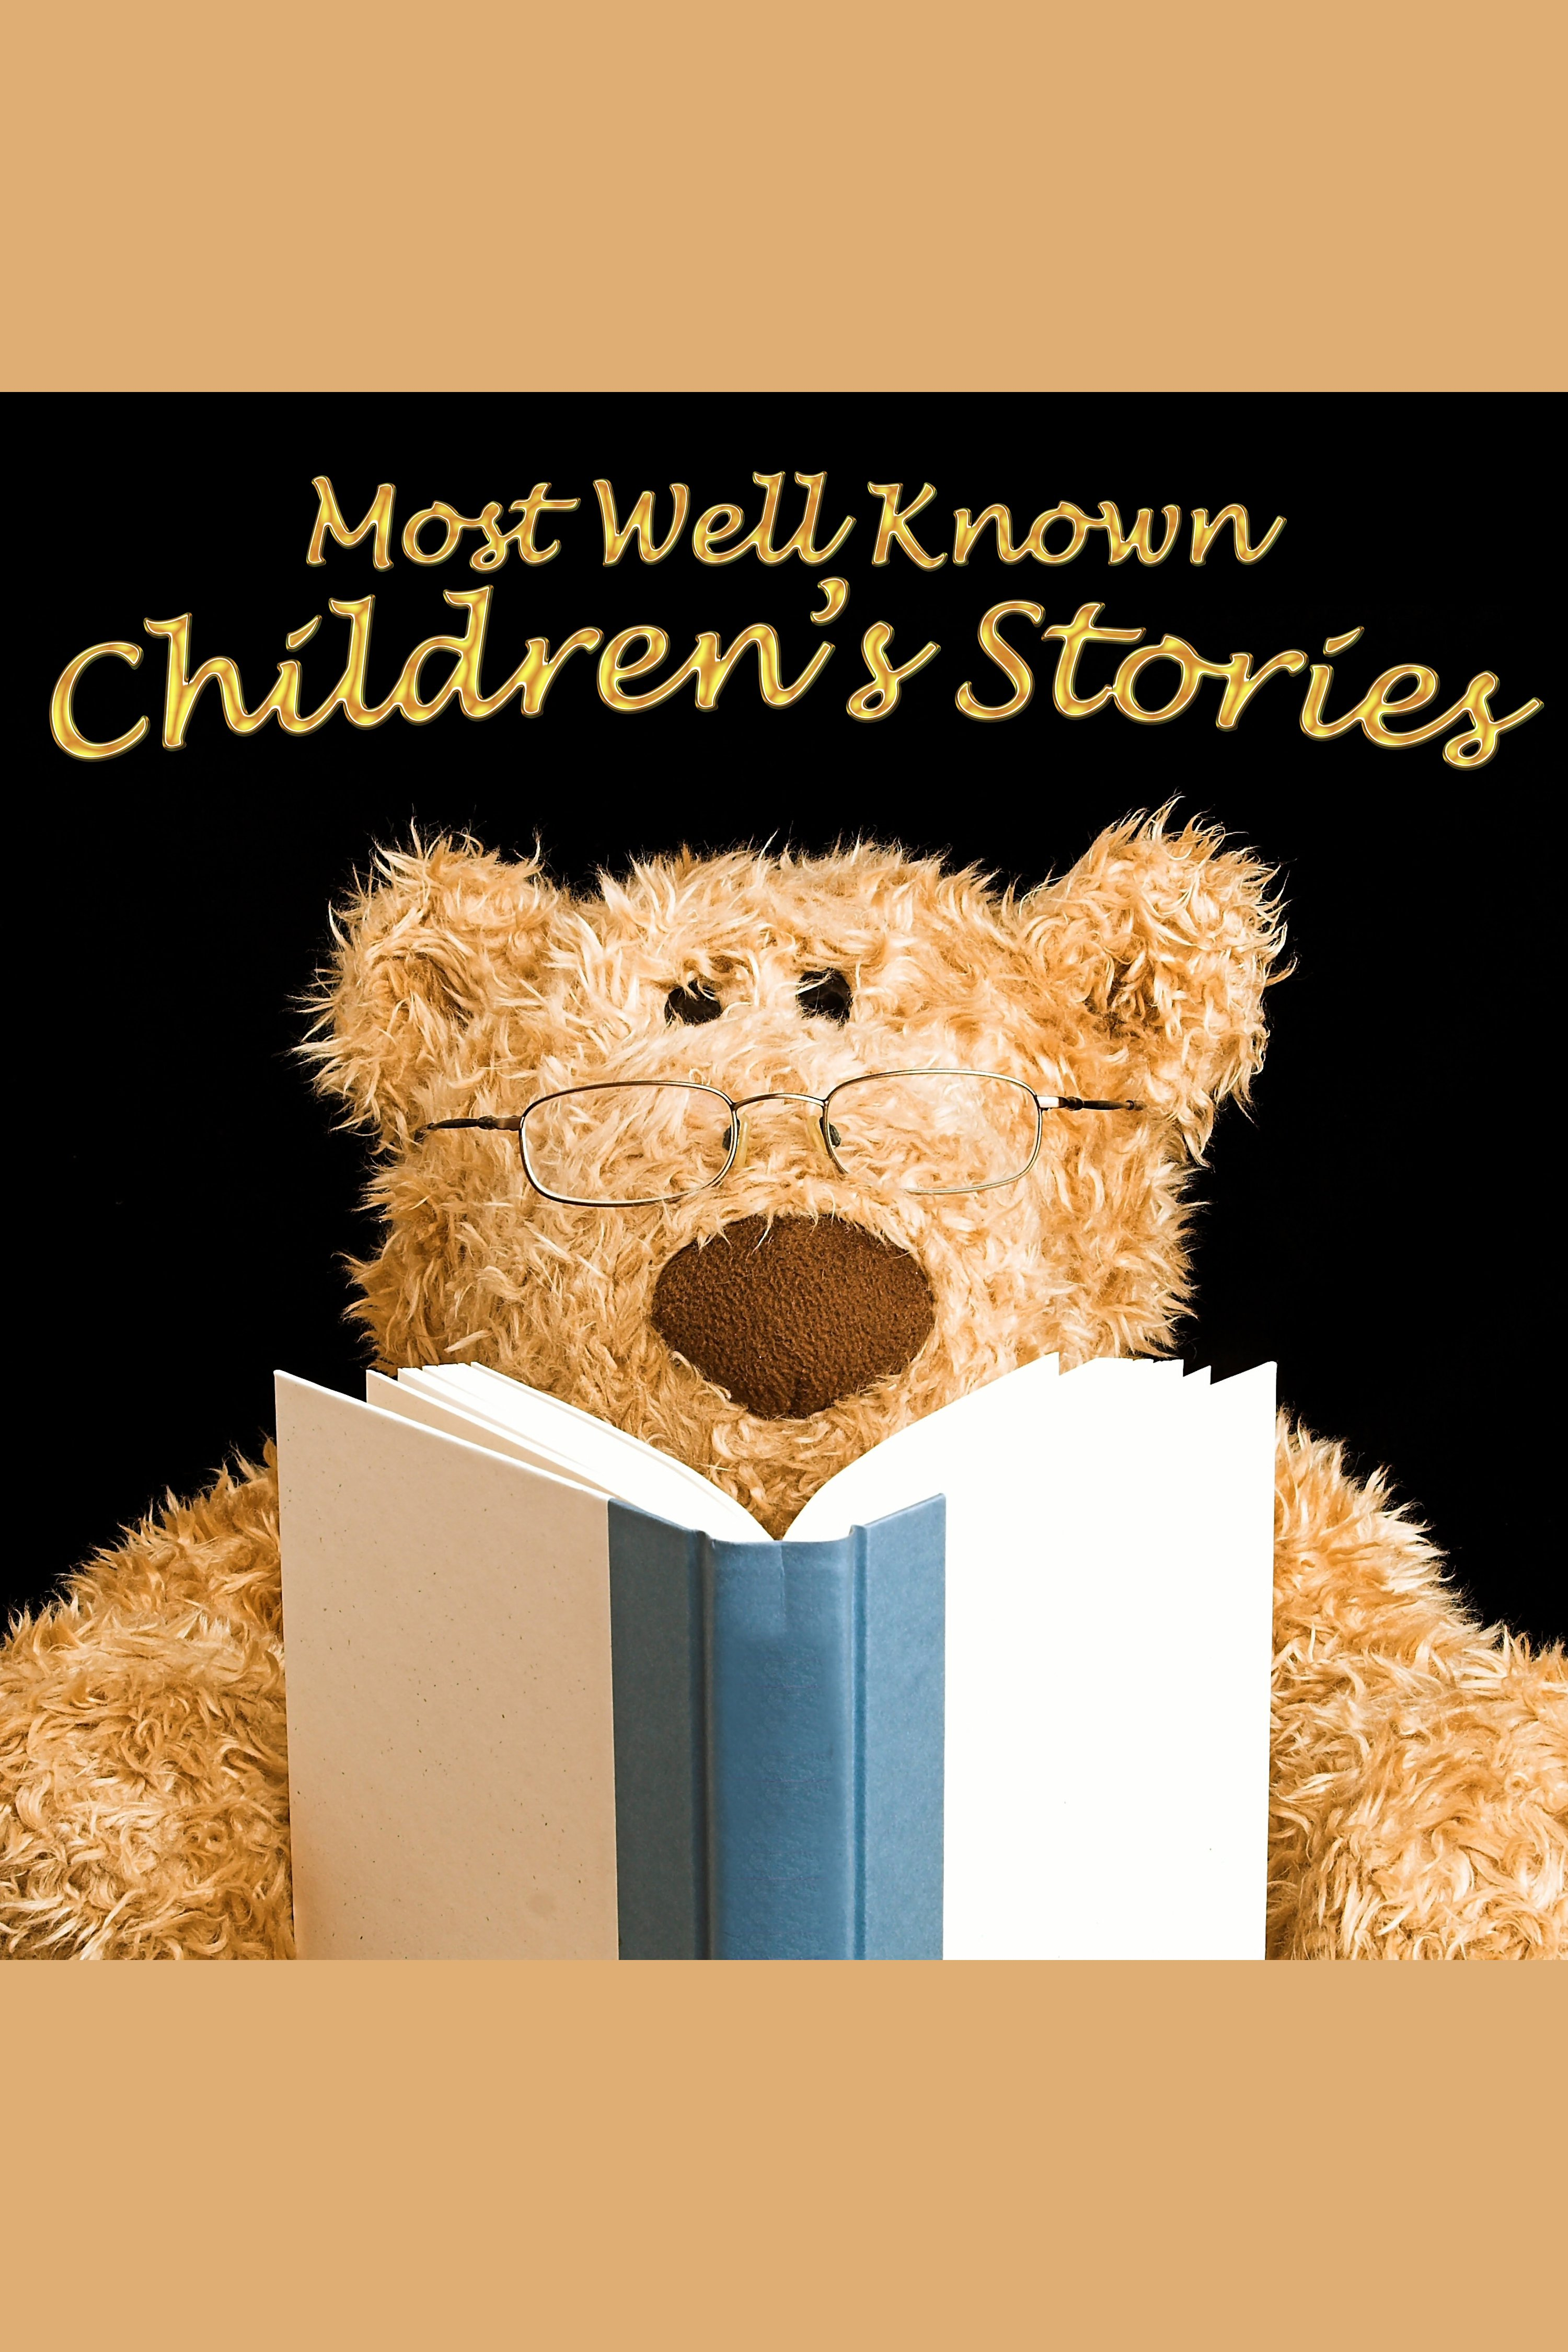 Most Well Known Children's Stories cover image